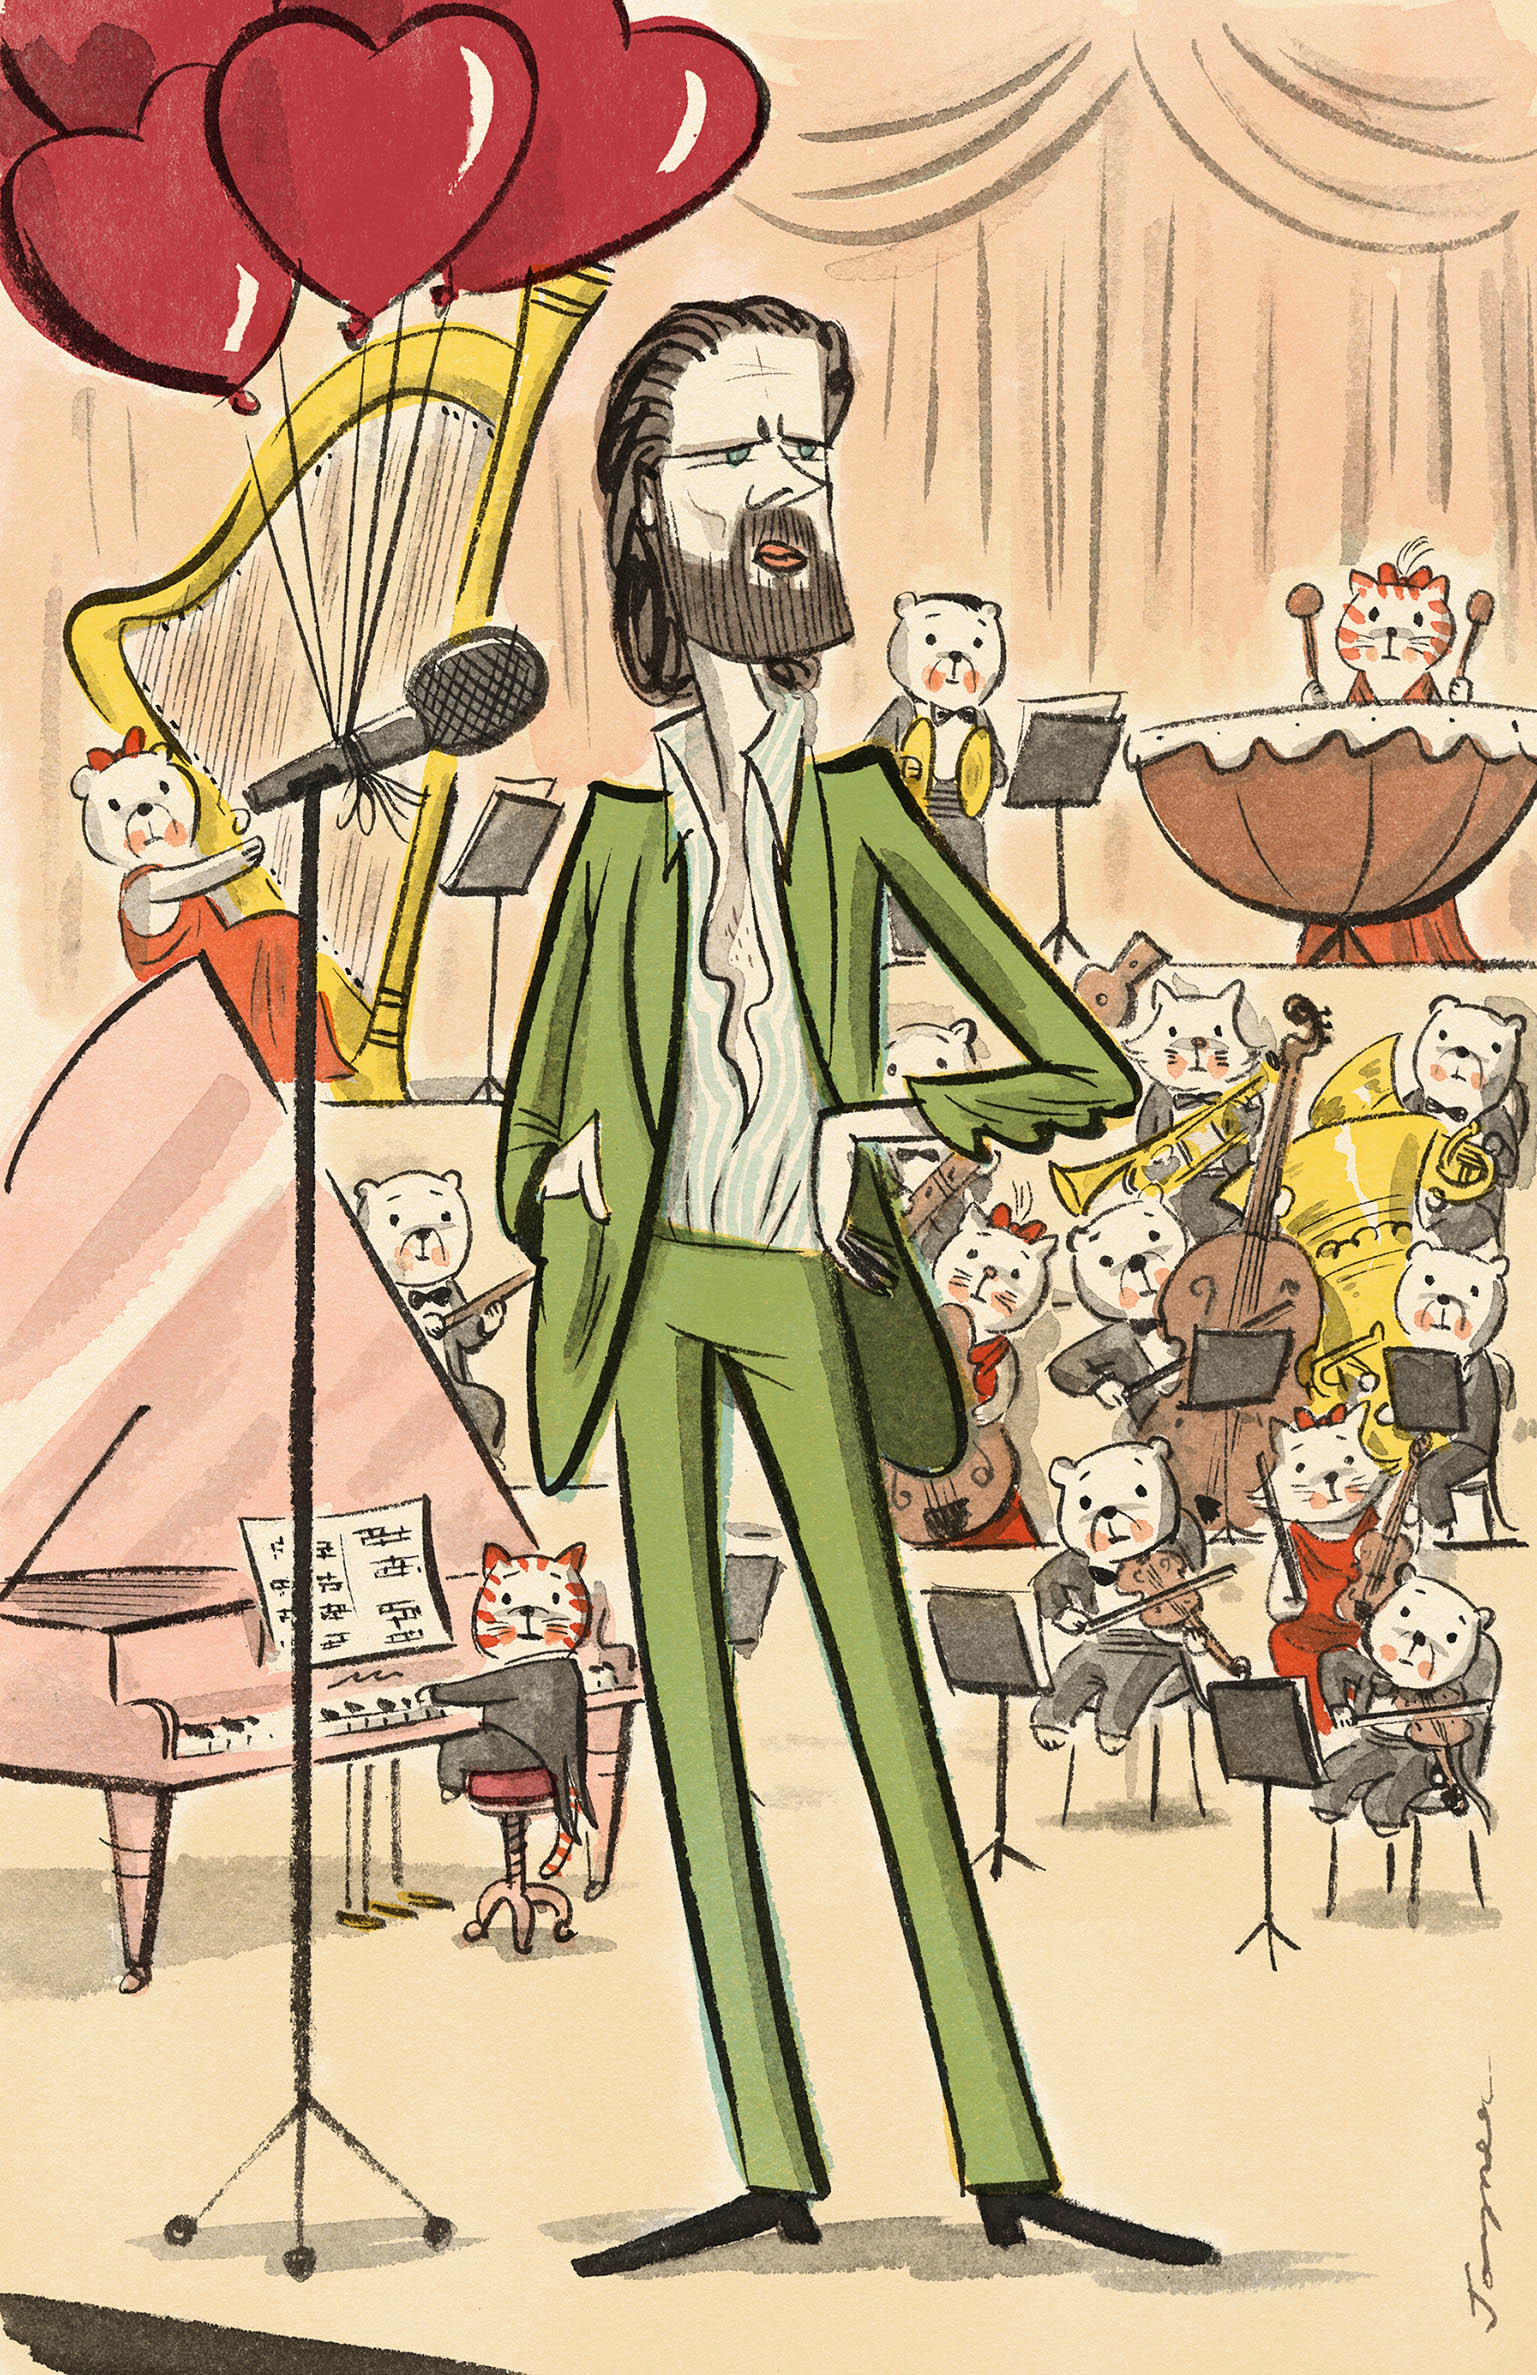 father john misty for  Rolling stone australia  march 2015.